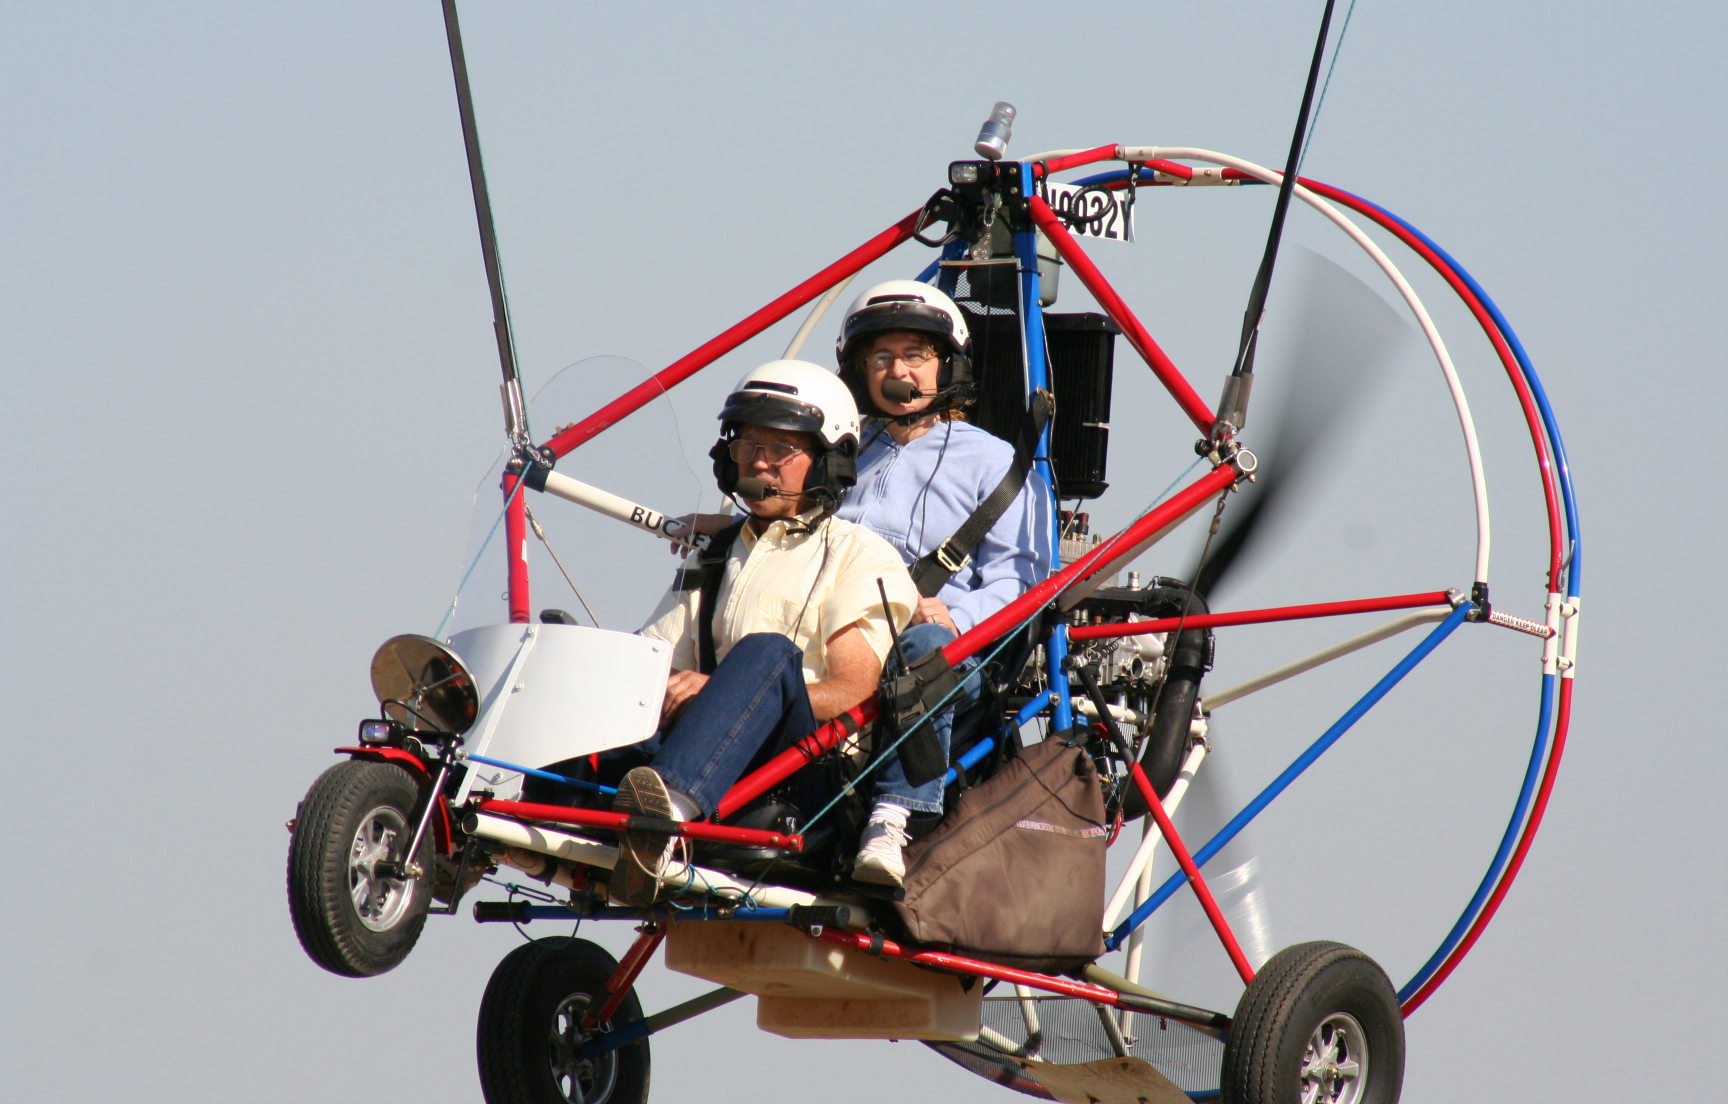 Corning, CA   –  TBA  Repairman Inspection Powered Parachute